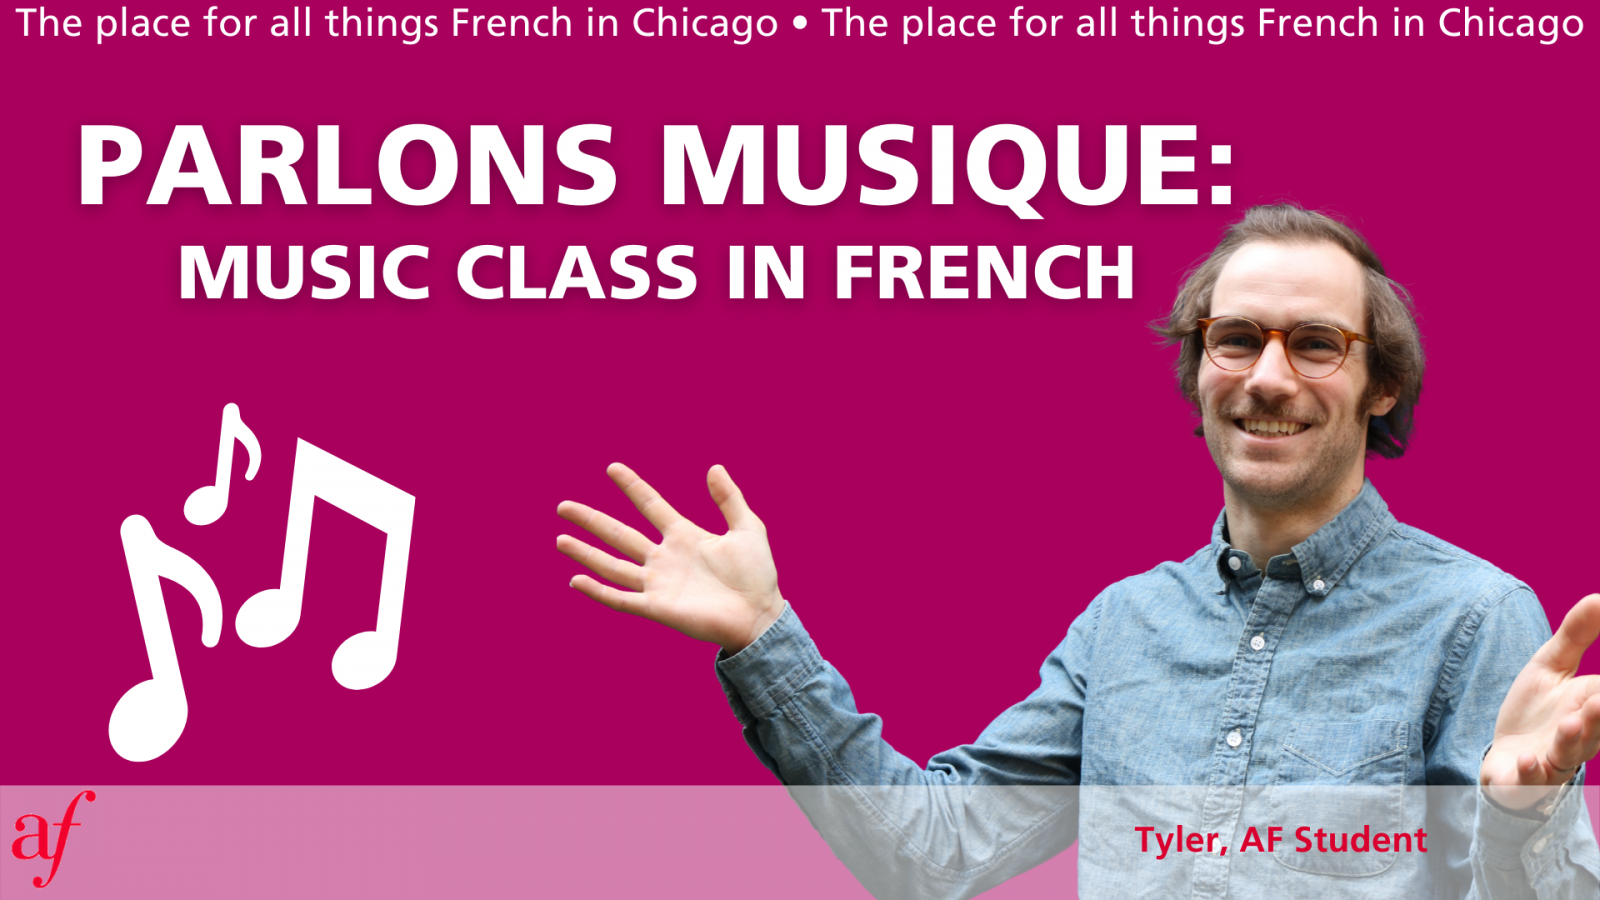 Parlons Musique - Music Class in French